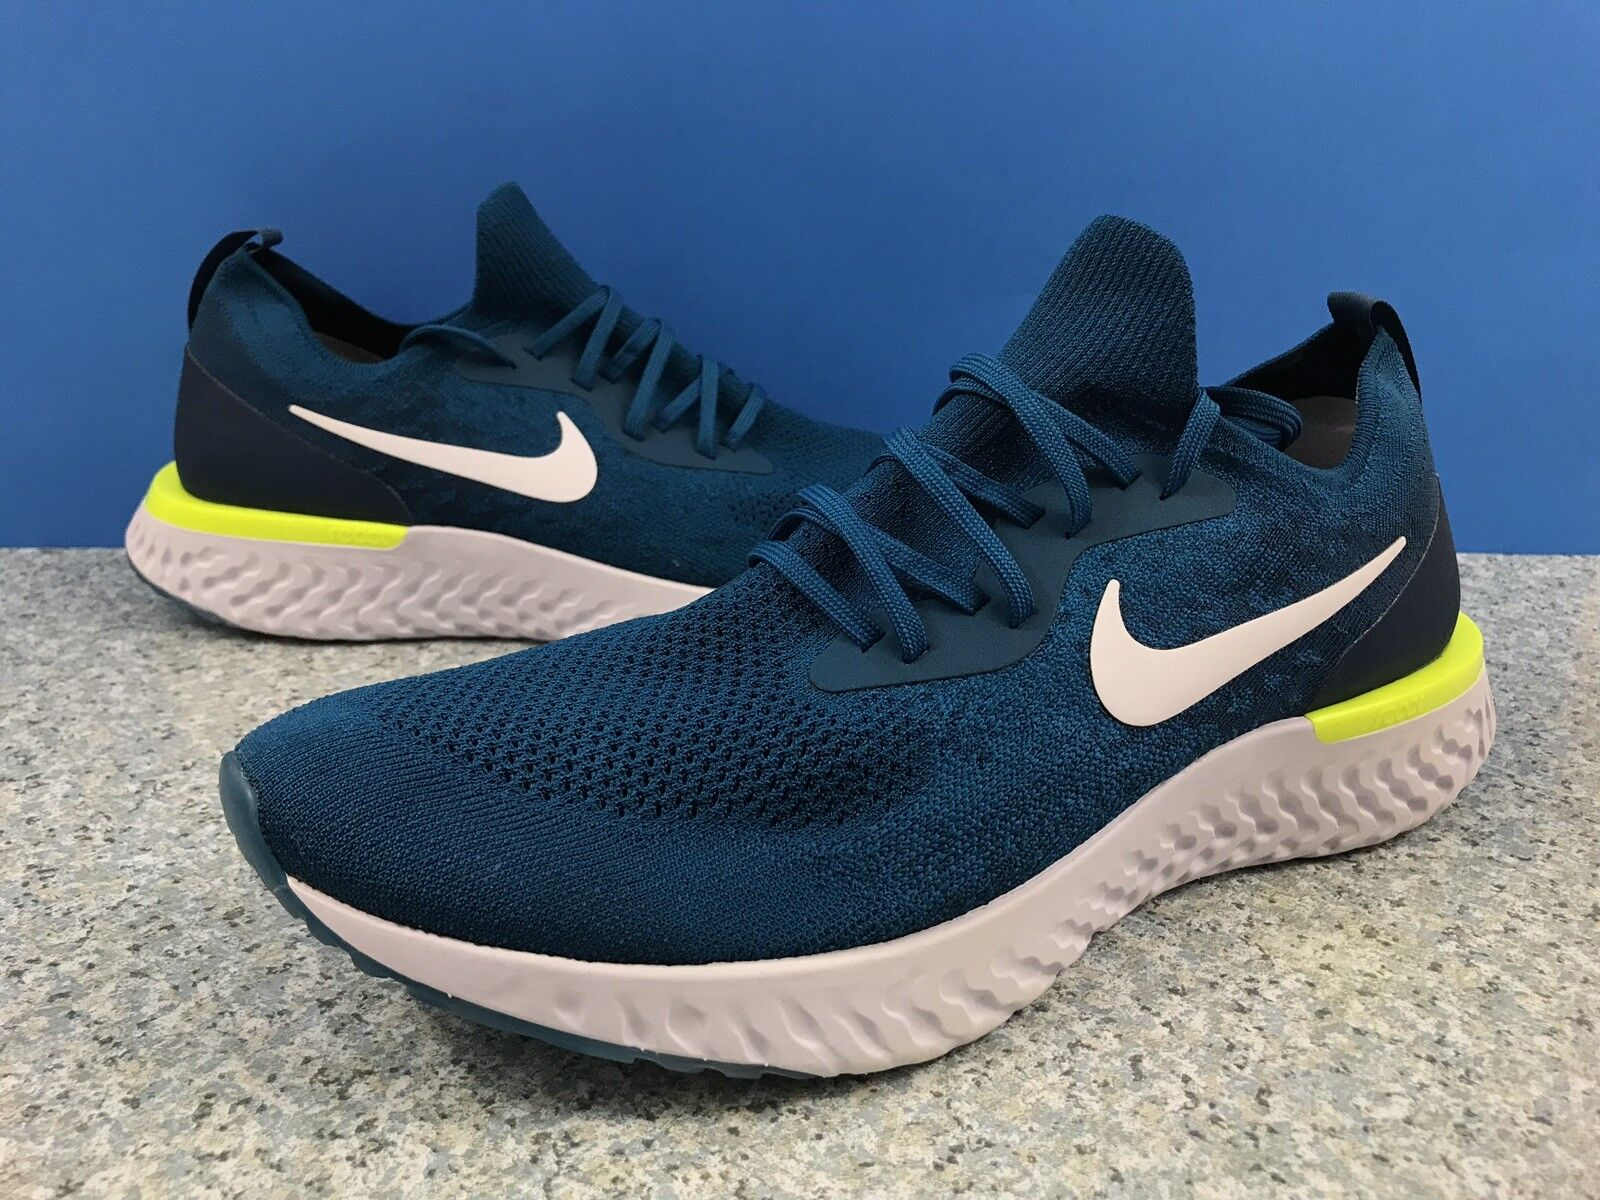 Nike Epic React Flyknit Green Abyss White bluee Force Sz 15 Men's AQ0067-302